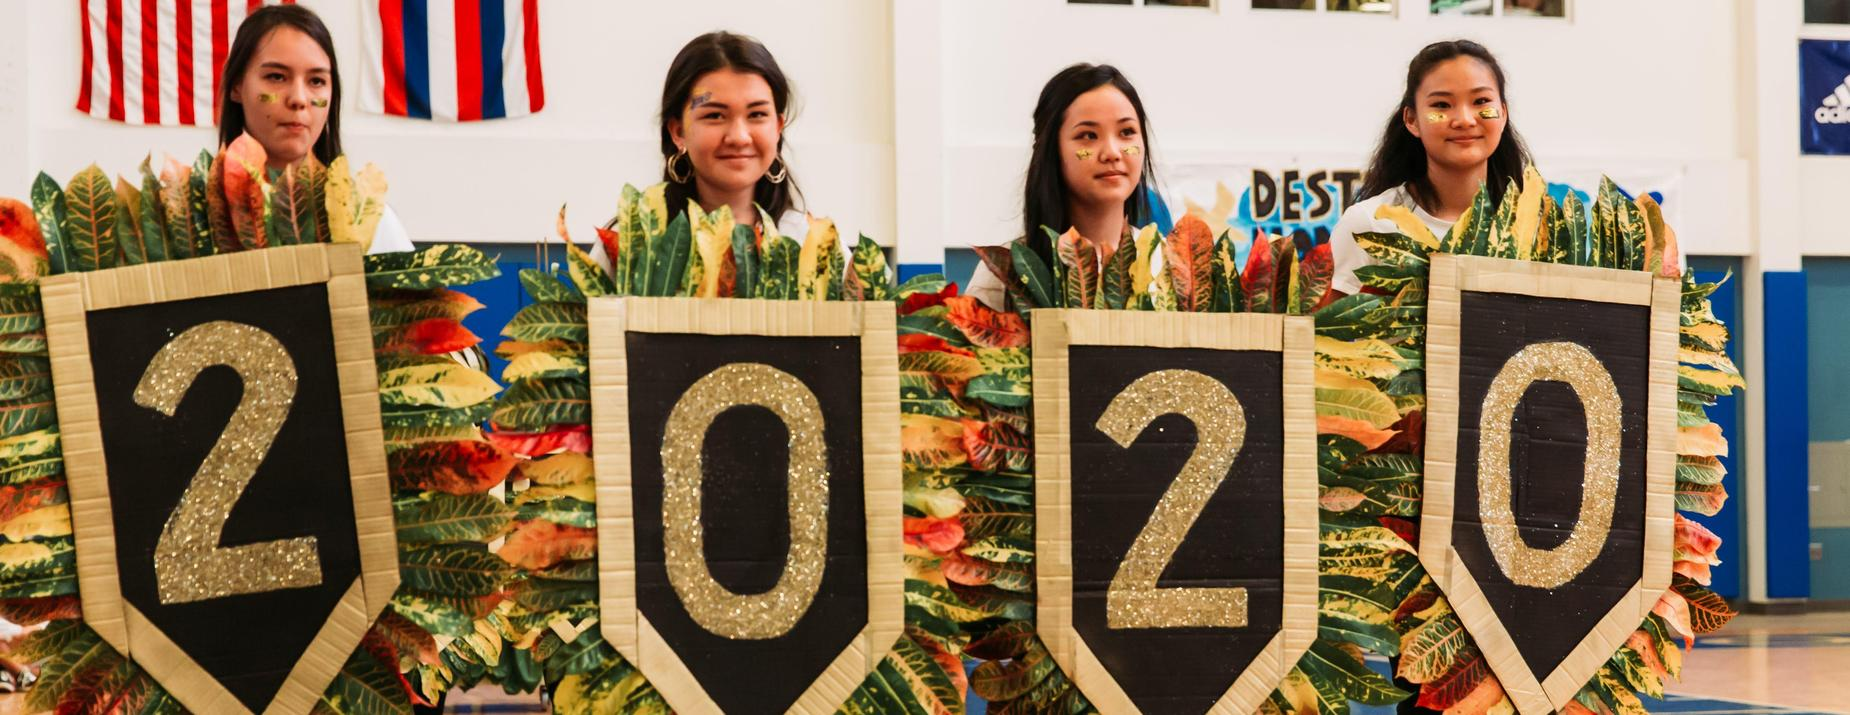 Students spell out 2020 using homemade shields.